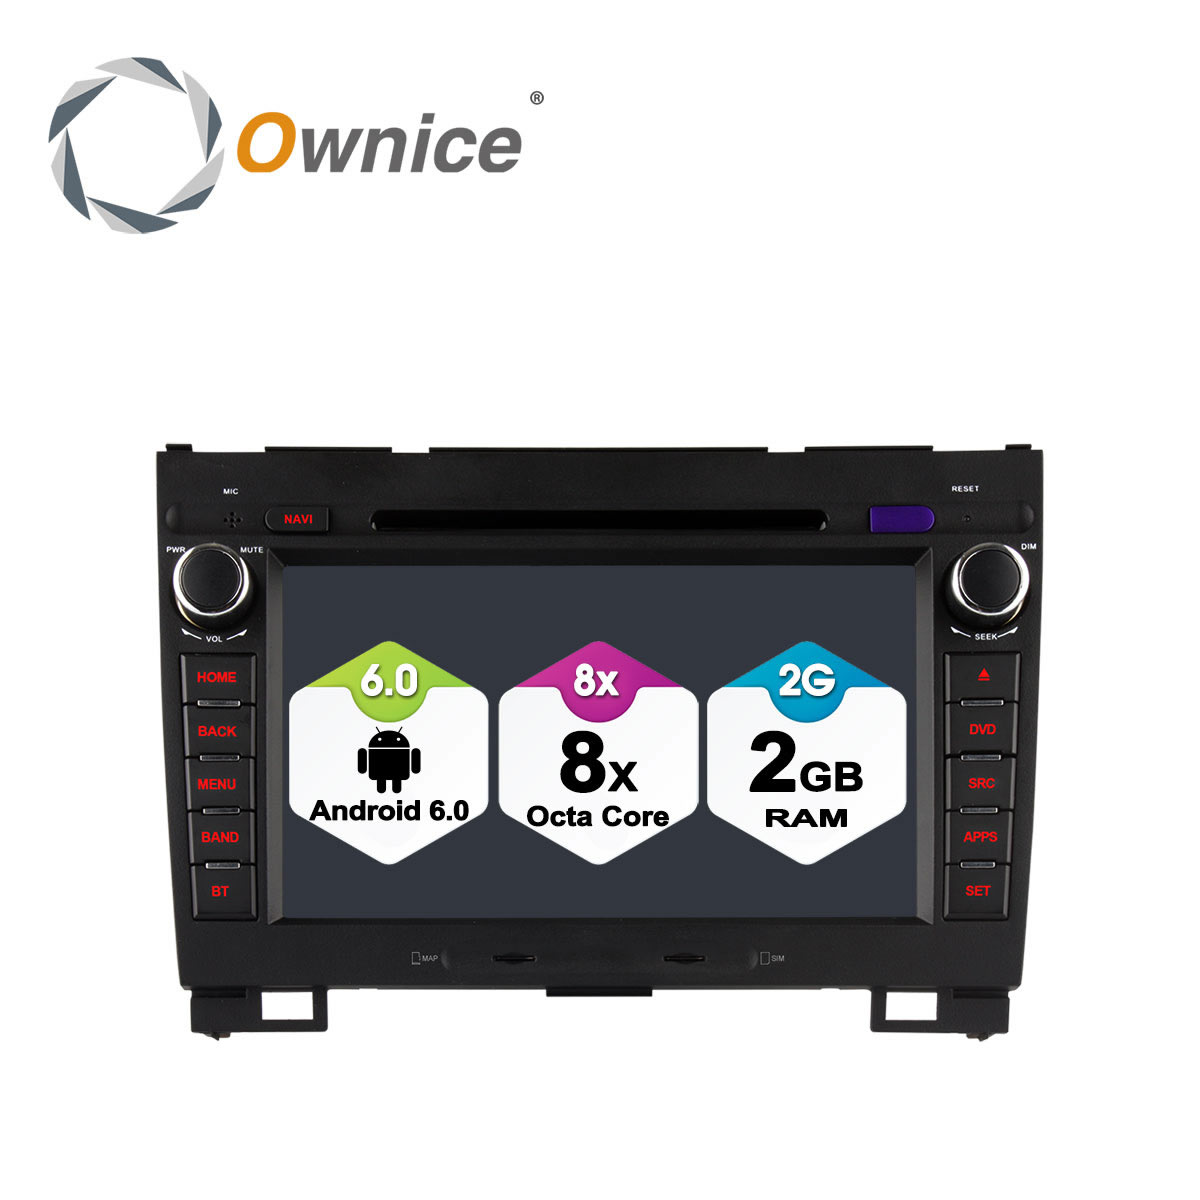 Ownice C500 Android 6.0 Octa 8 Core 4g SIM LTE AUTO DVD-PLAYER Für Great Wall Hover H3 H5 mit GPS navigation radio 32g ROM